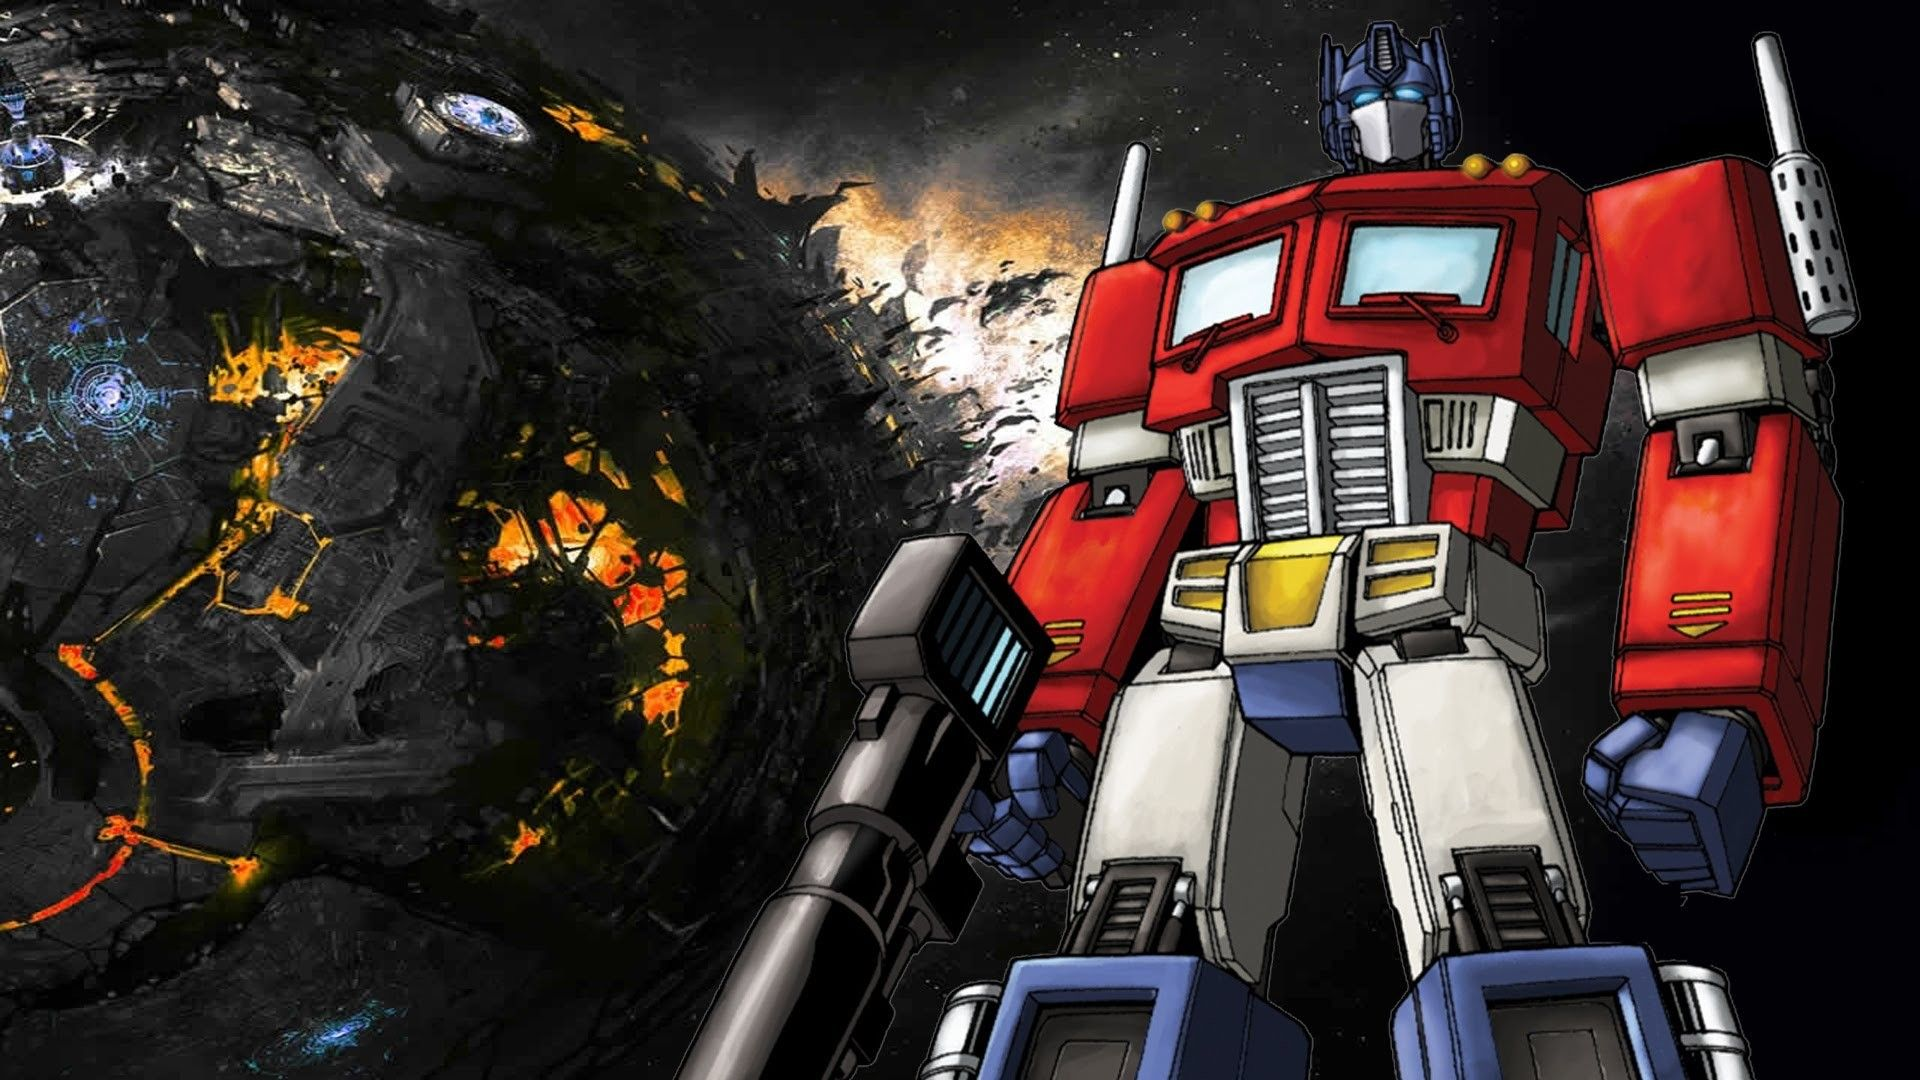 1920x1080 Displaying 17 Images For Optimus Prime G1 Wallpaper Hd Transformers Transformers Artwork Transformers Canvas